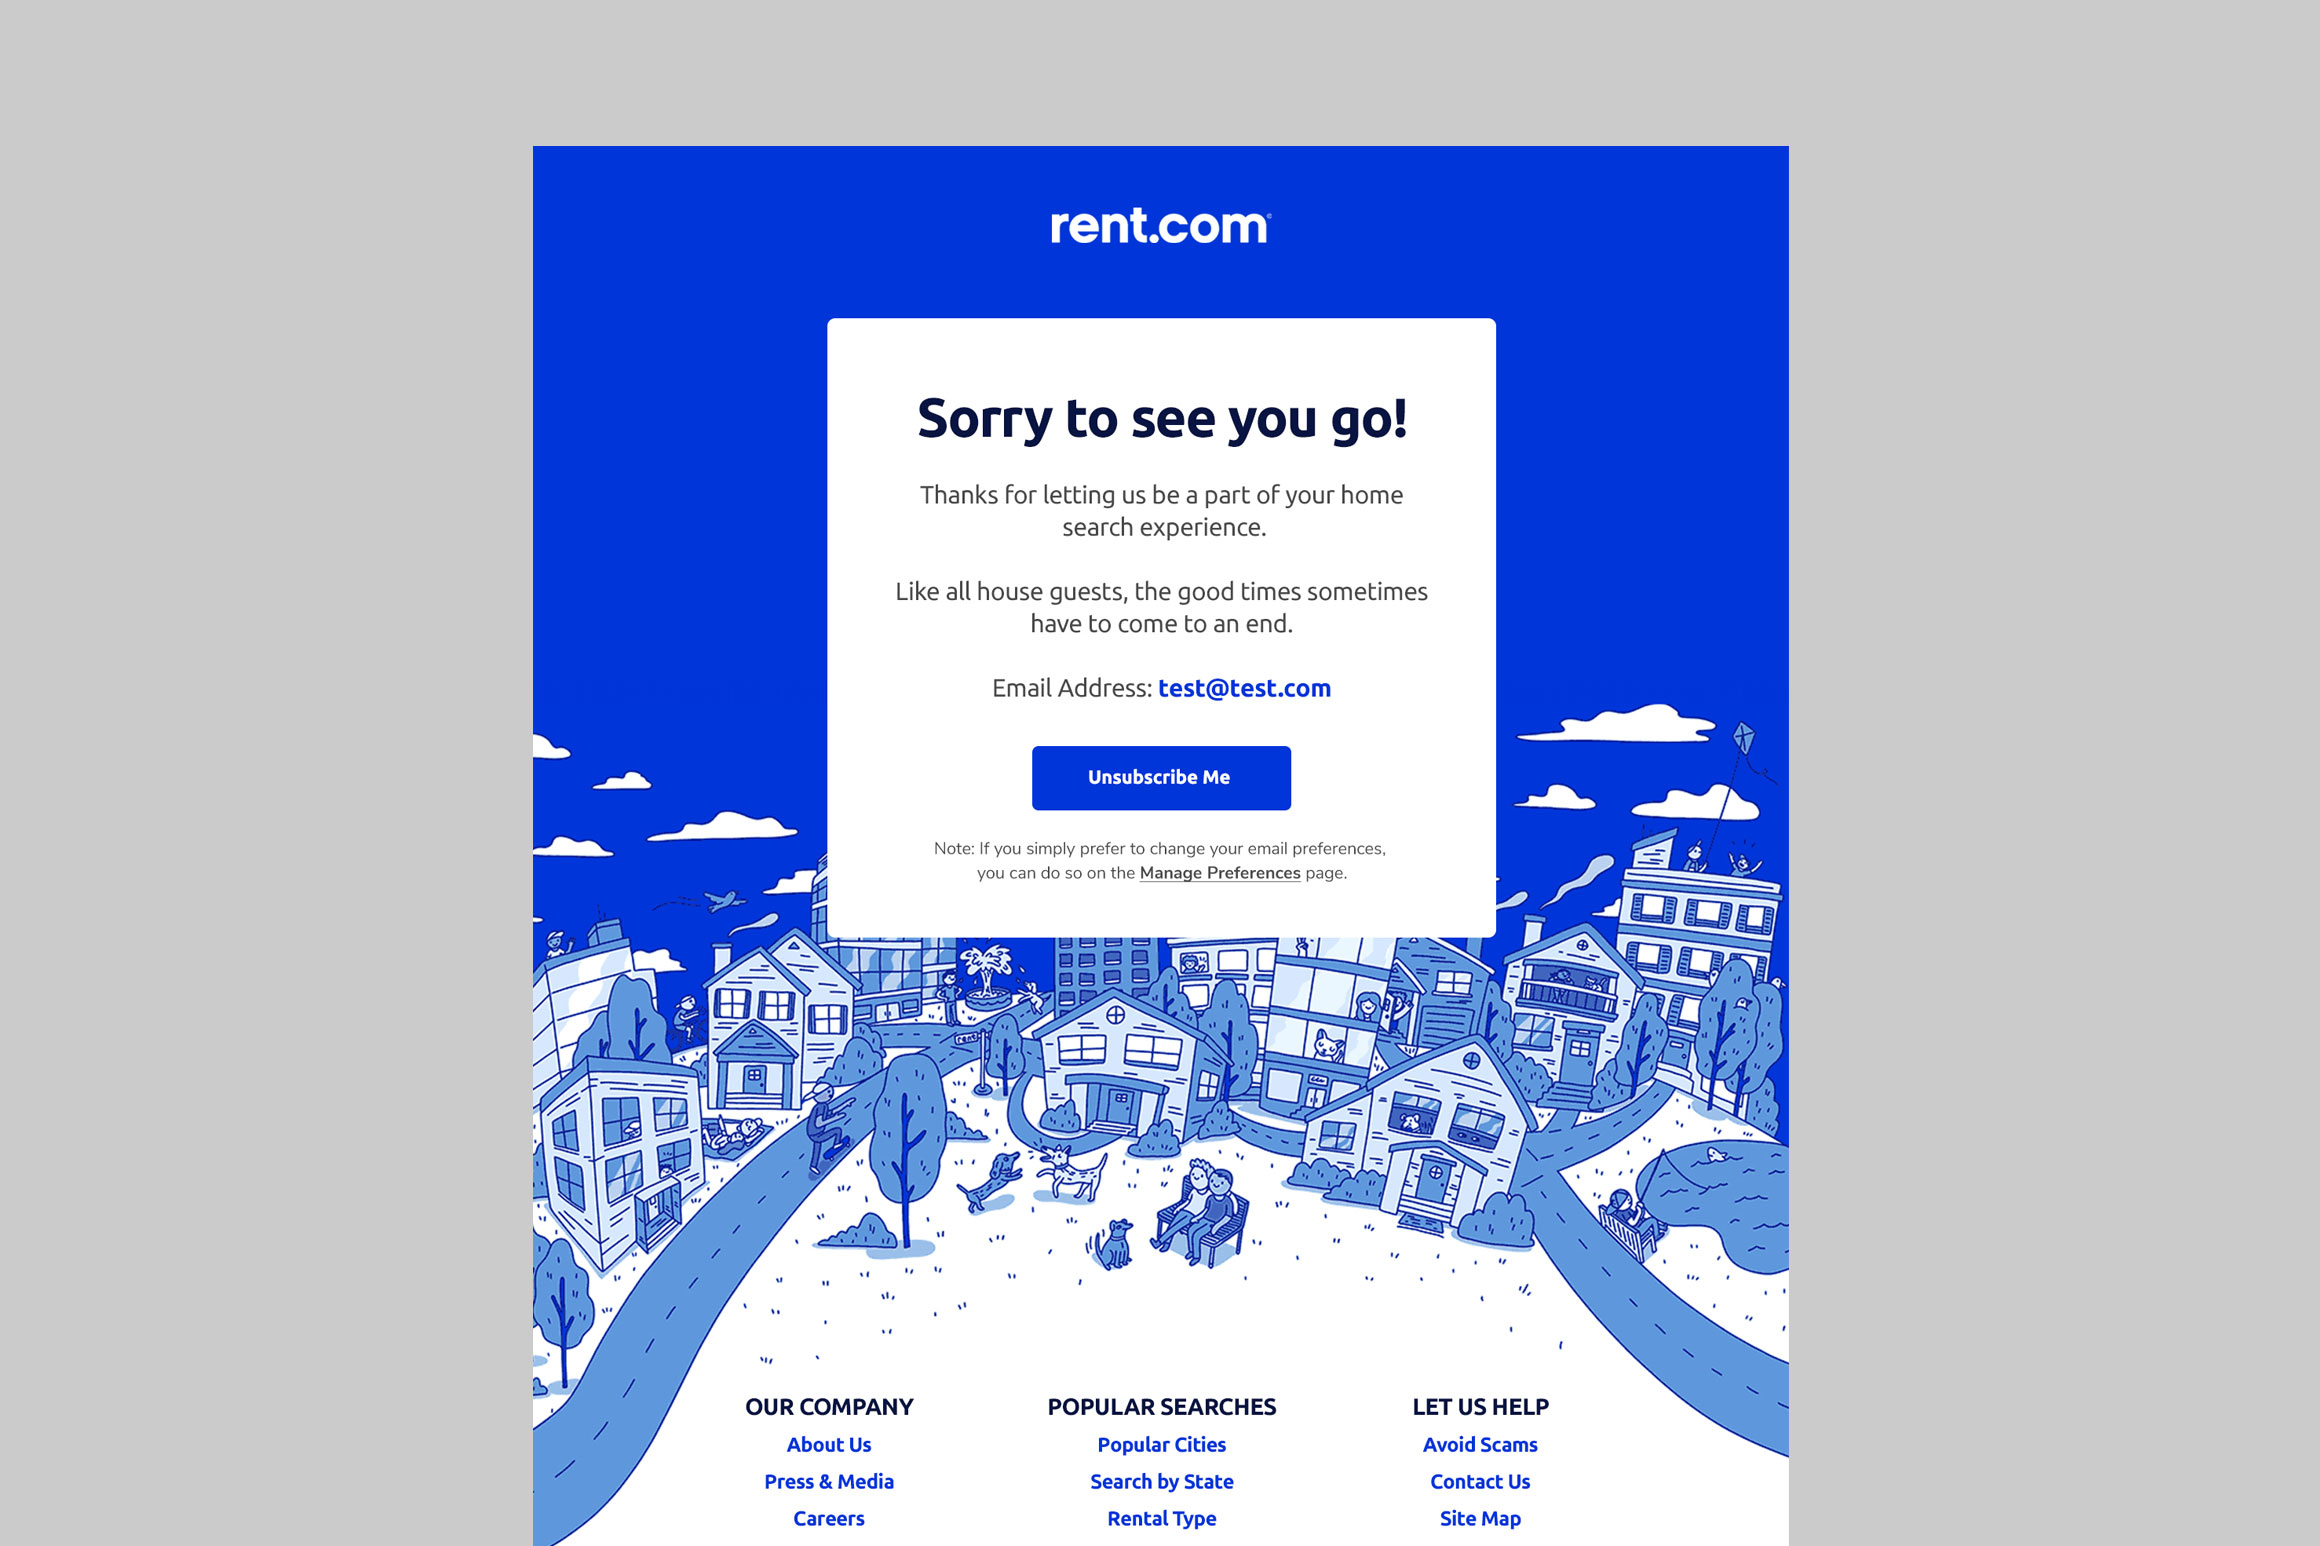 Rent.com Unsubscribe Webpage